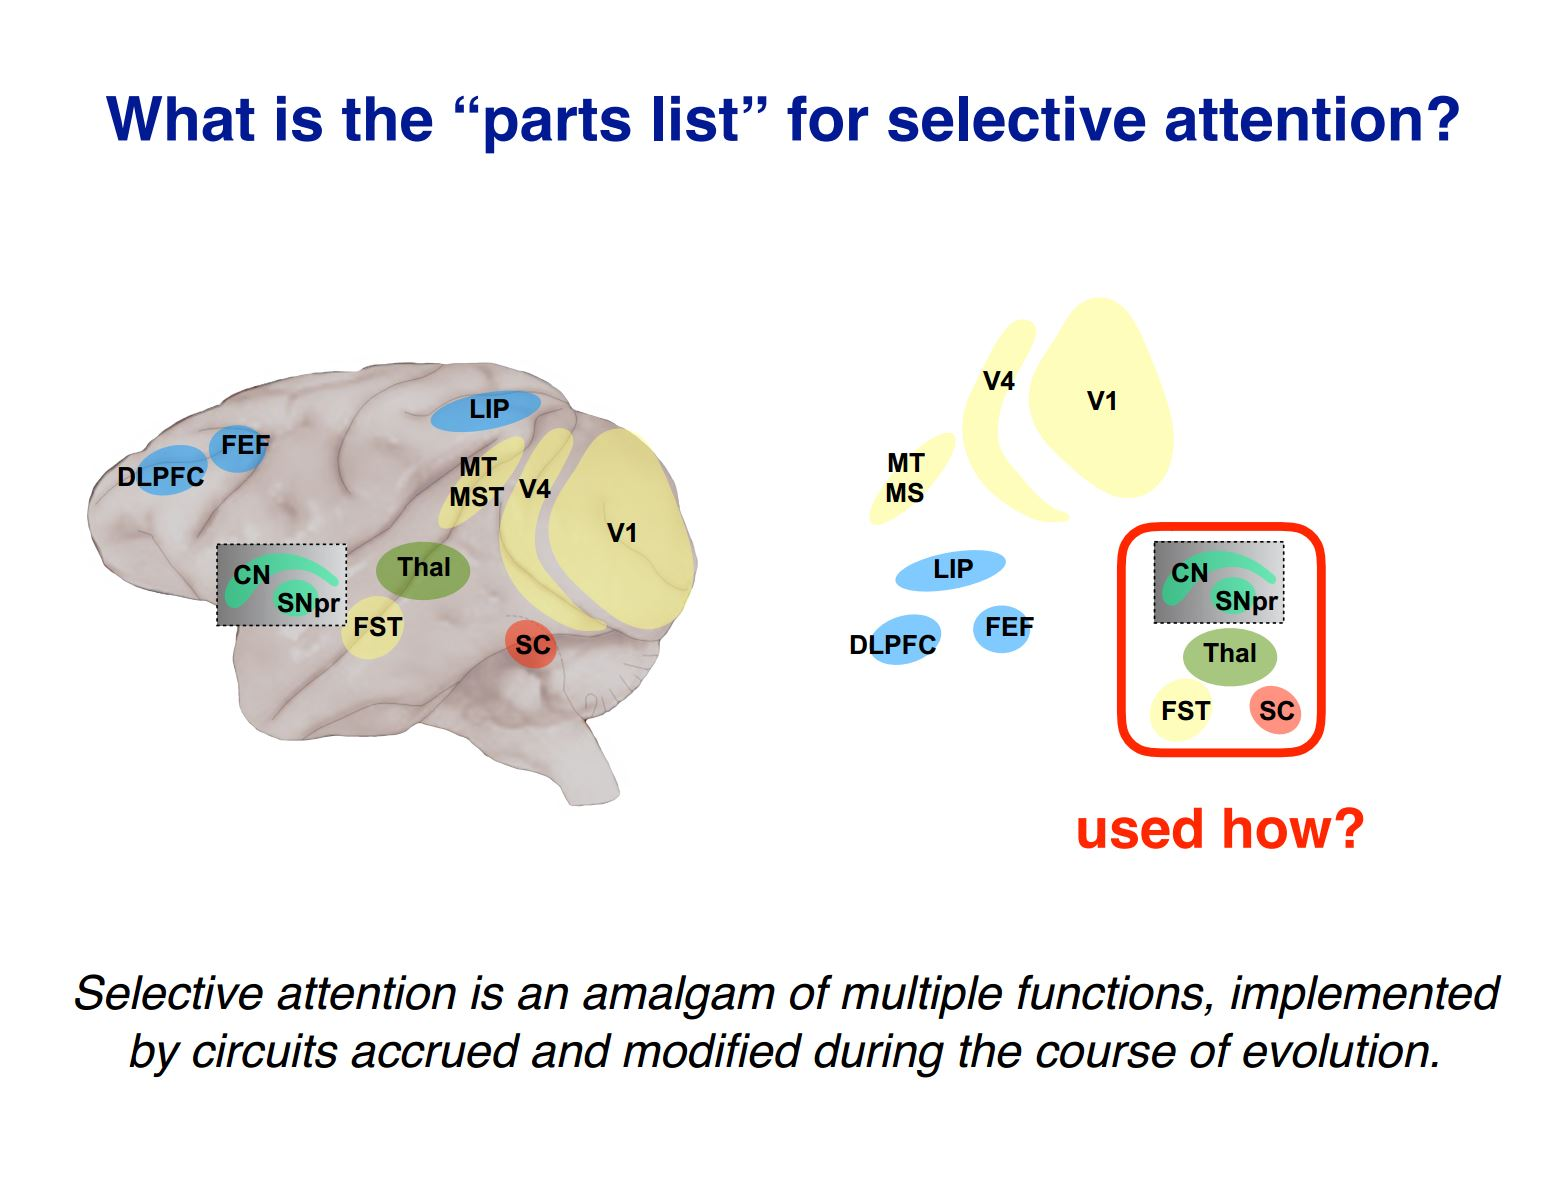 Evolution of selective attention